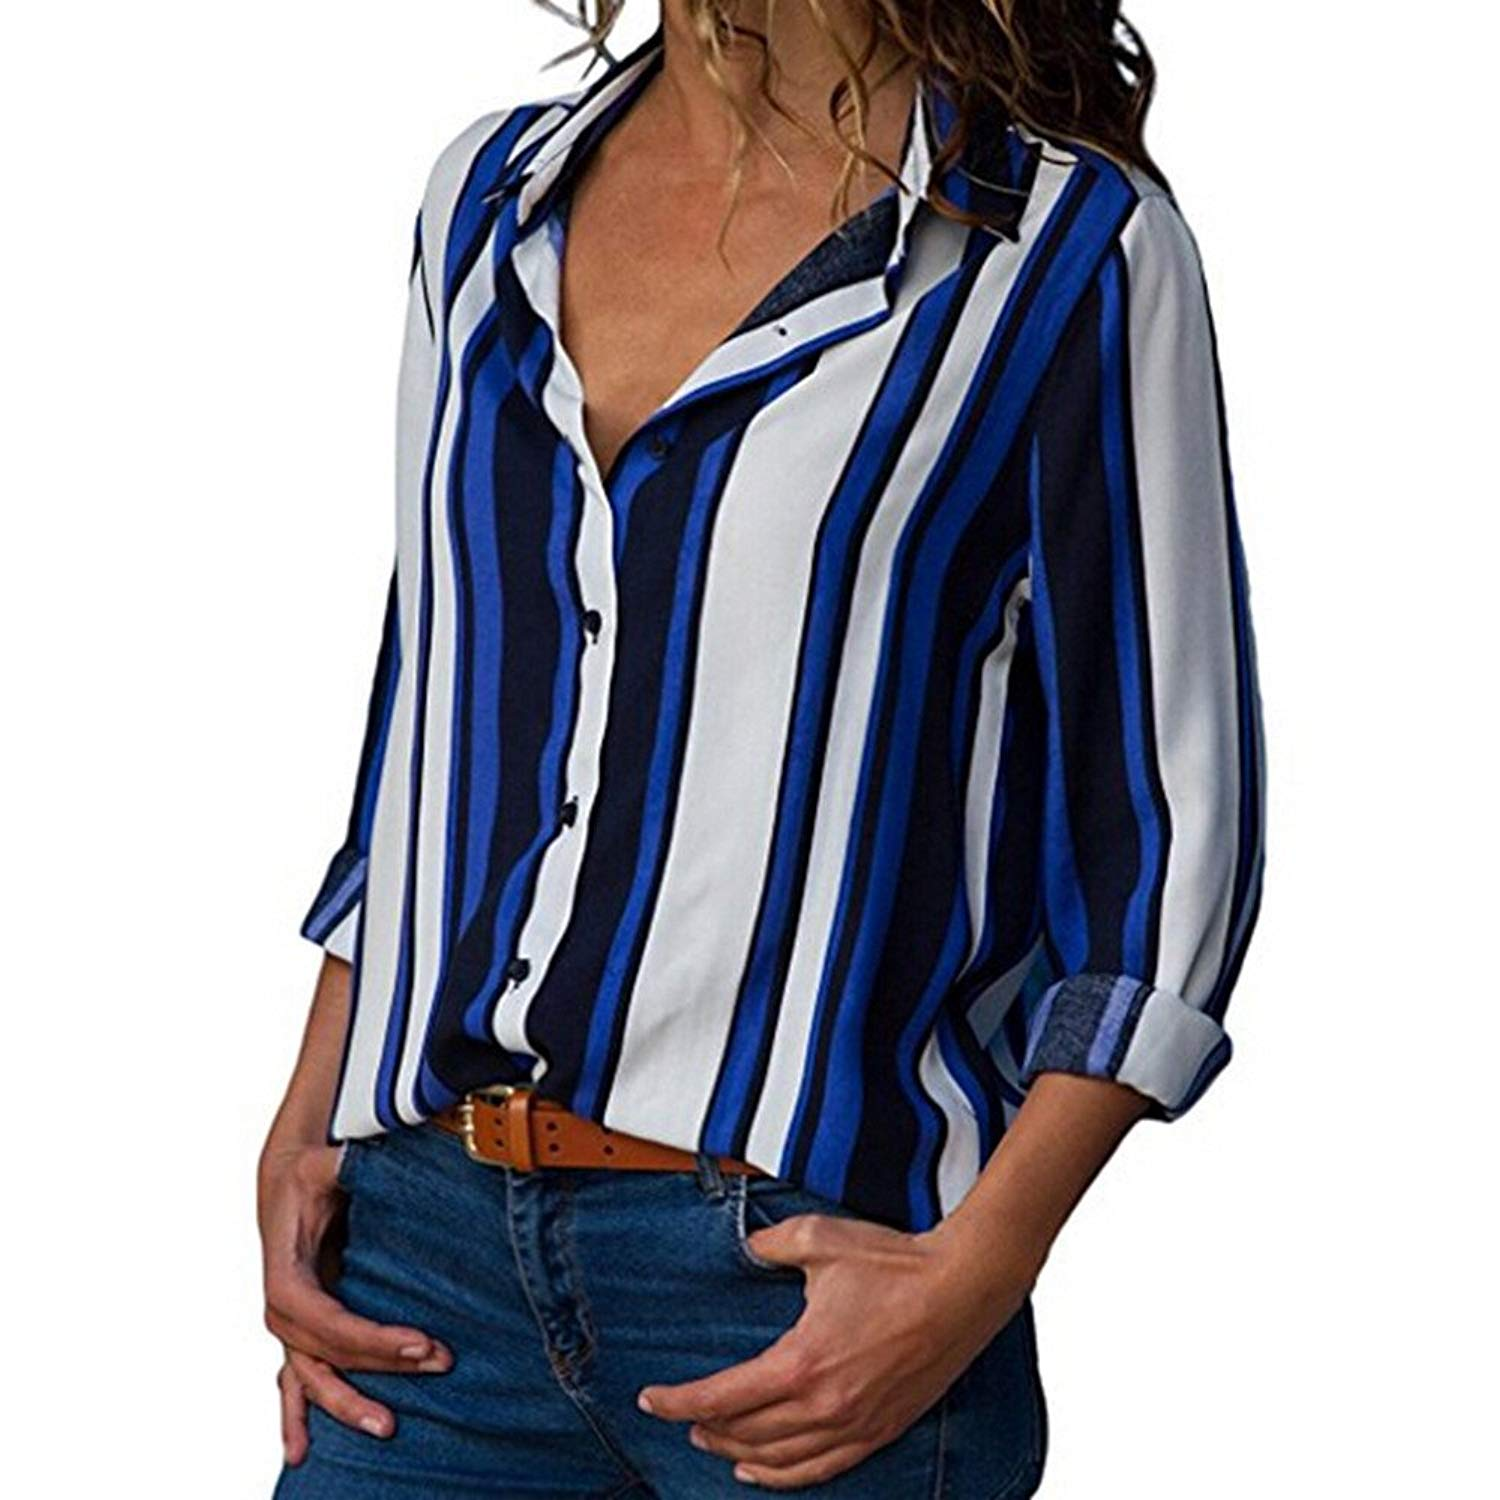 F_topbu Women Shirts and Blouses,Women Long Sleeve V-Neck Button up Striped Casual Blouse Loose Shirt T-Shirt(Polyester)